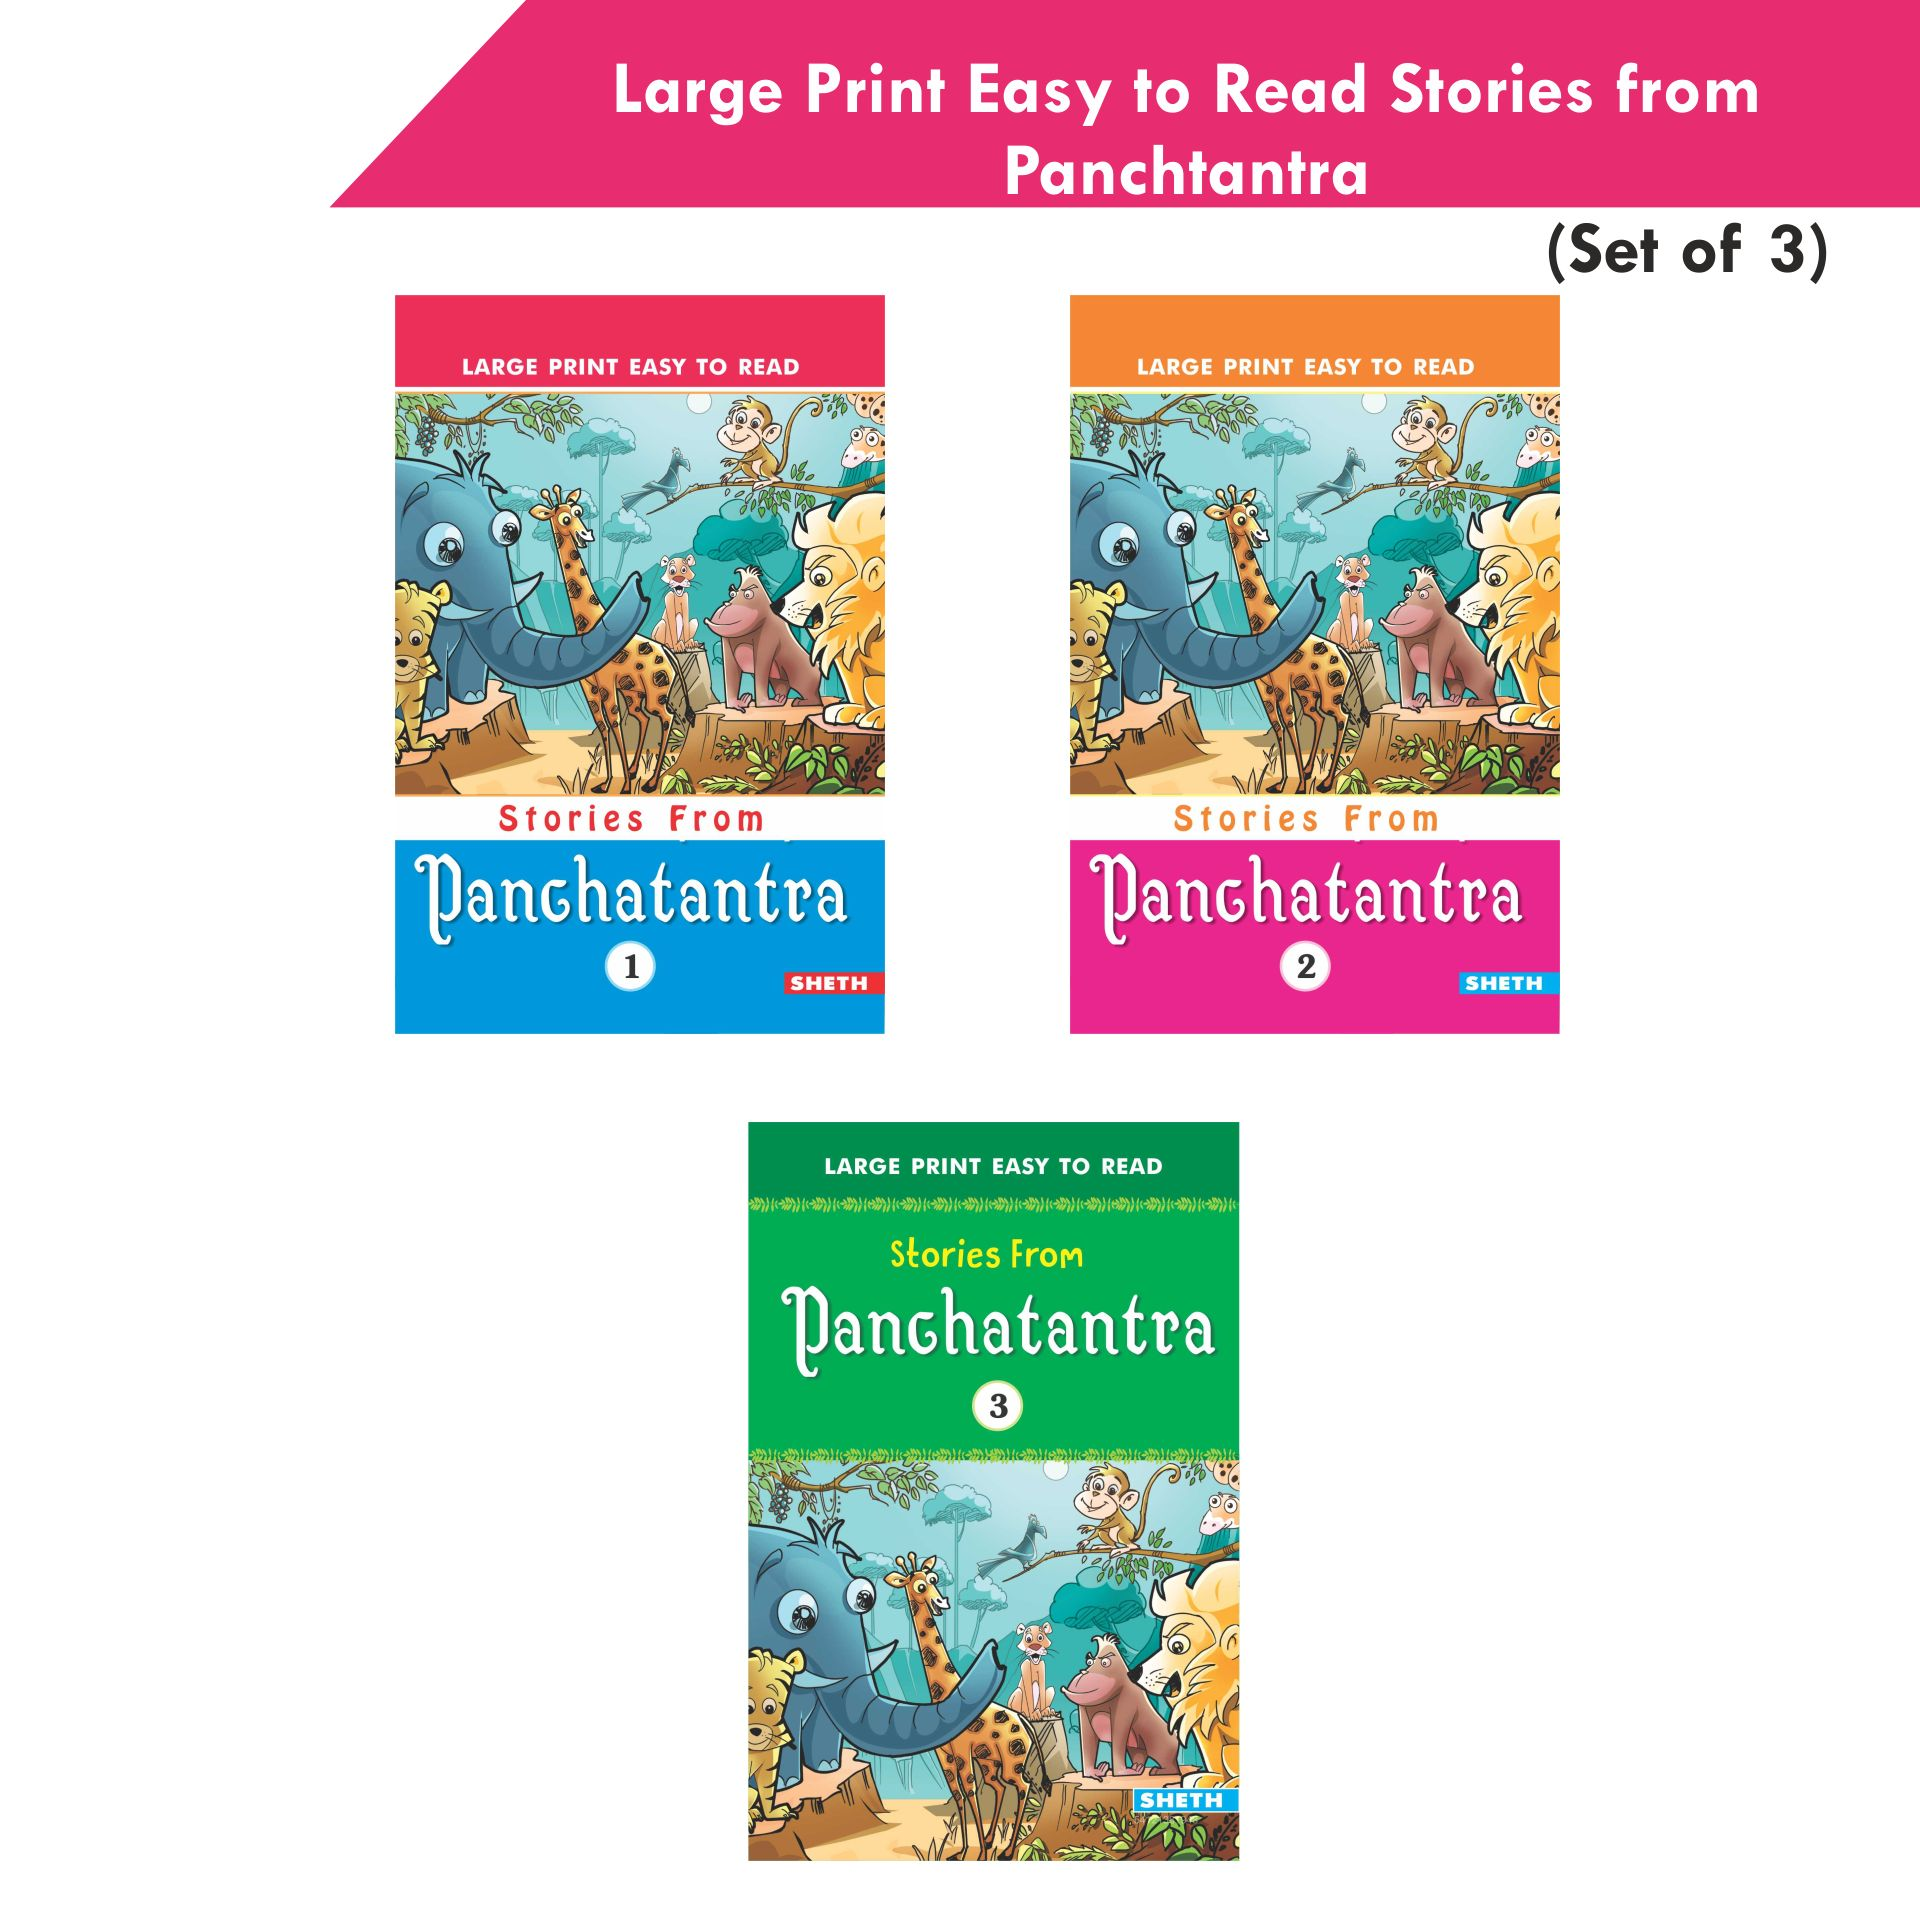 Large Print Easy to Read Stories from Panchtantra Set of 3 1